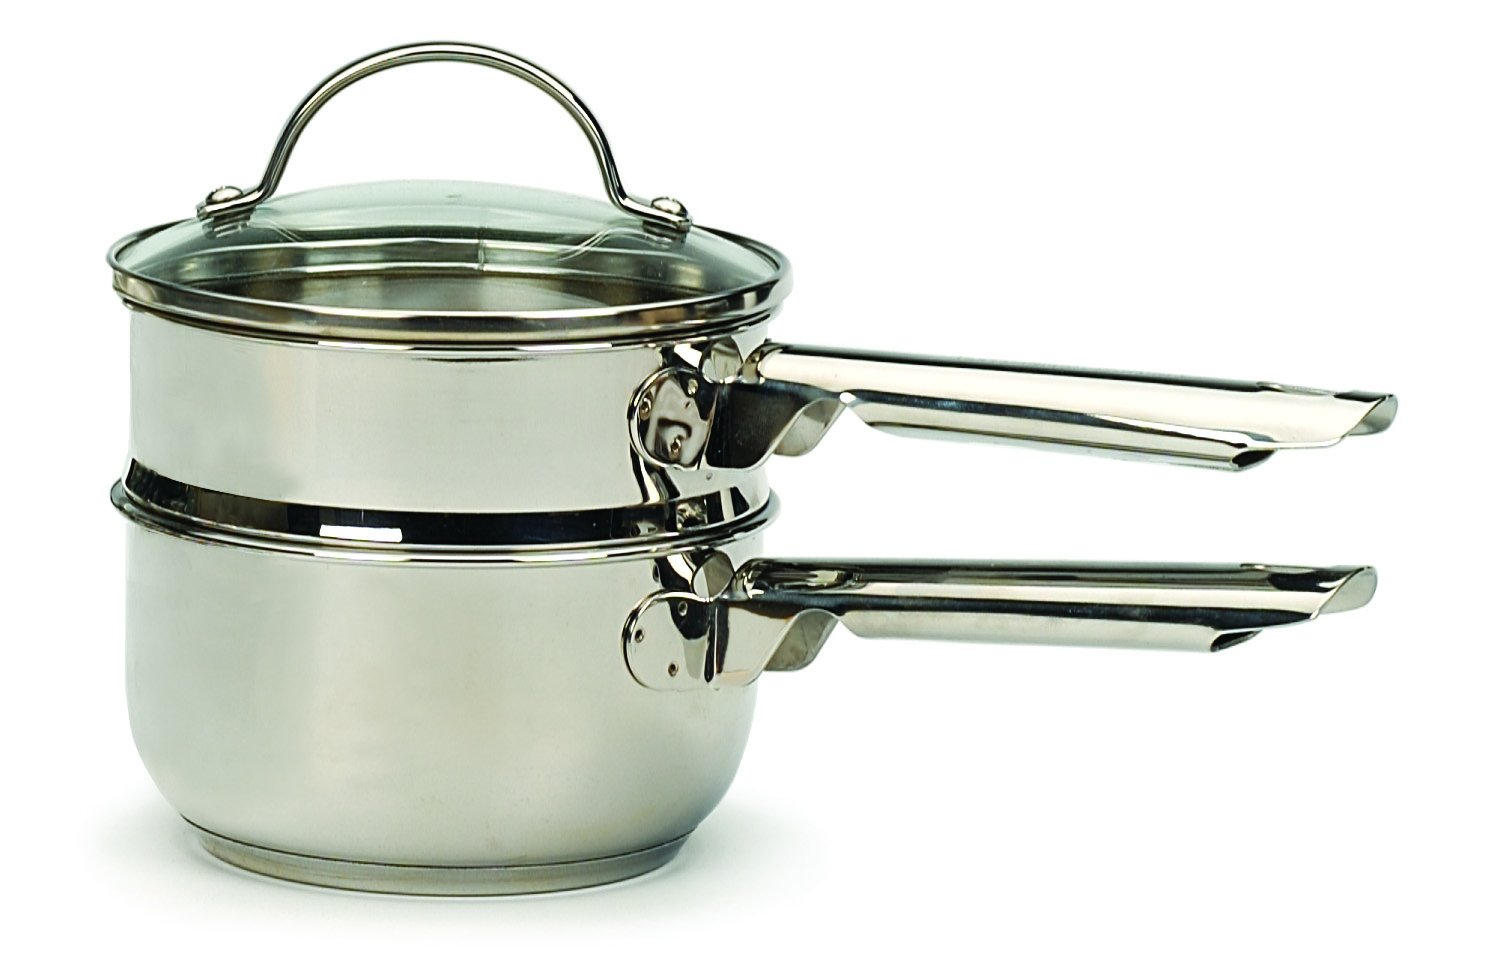 RSVP International MDB-1IN 1-quart Induction Double Boiler, One Size, Multi Color